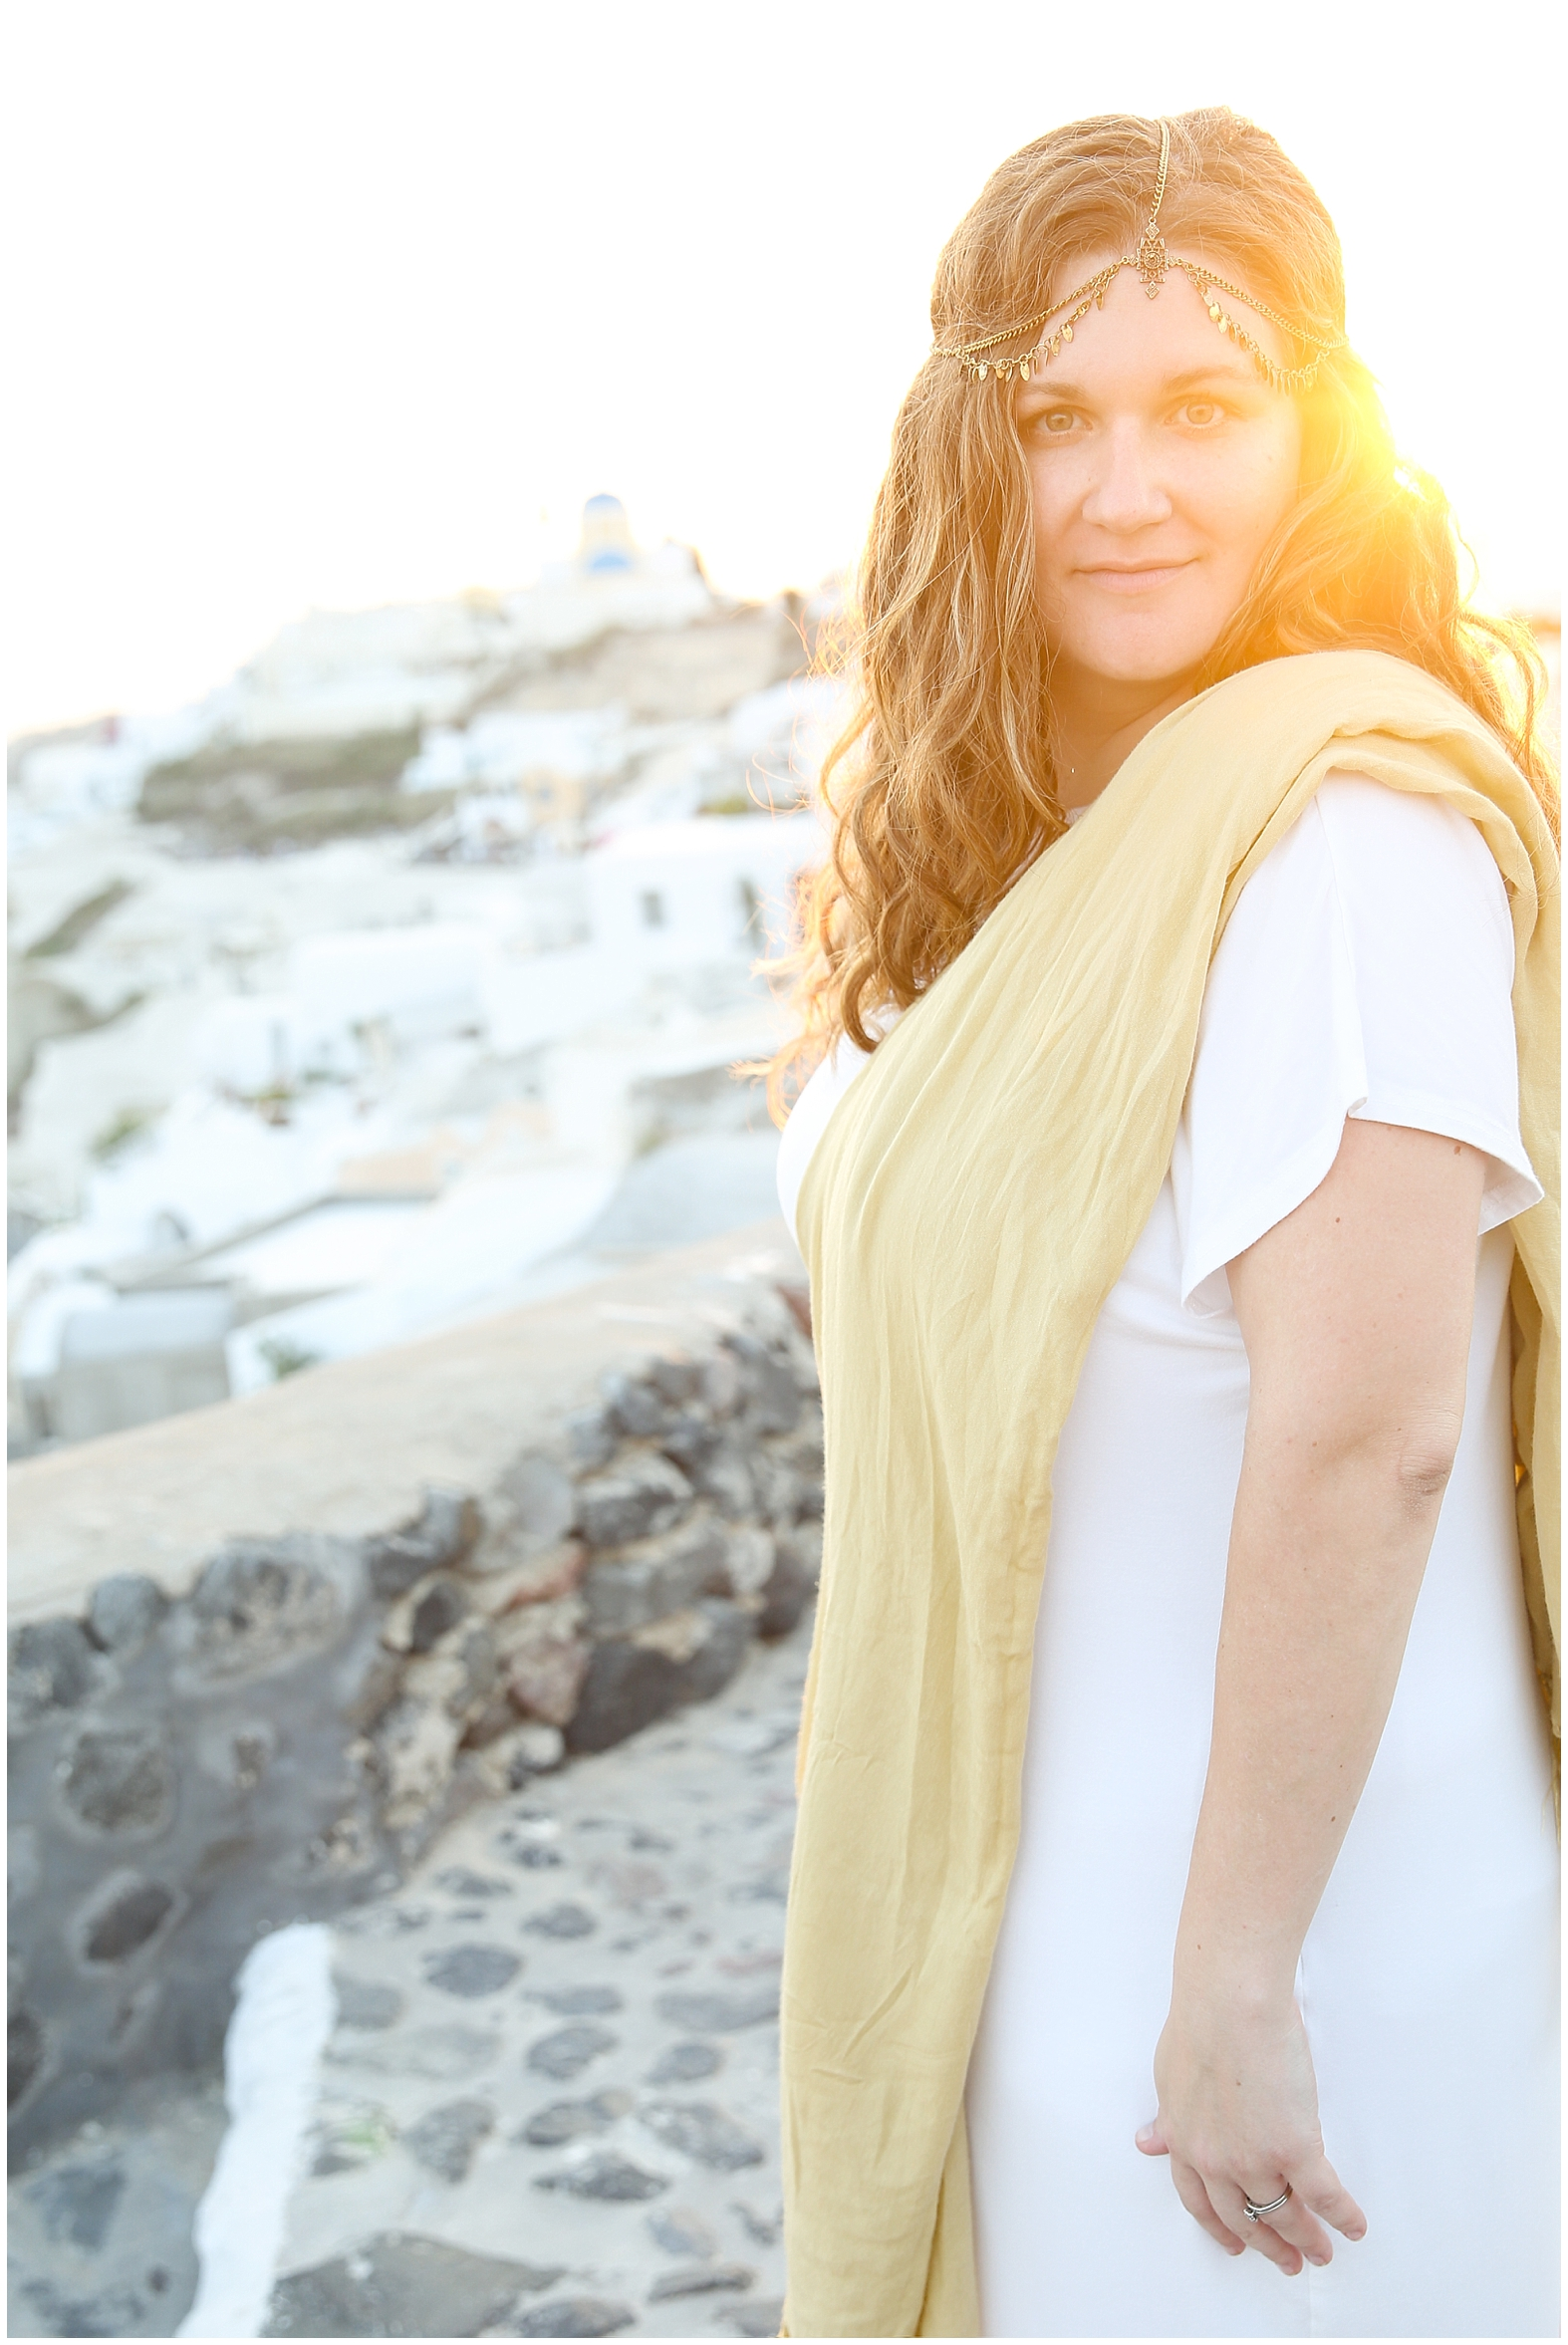 Greek Goddess Photoshoot. Santorini, Greece.